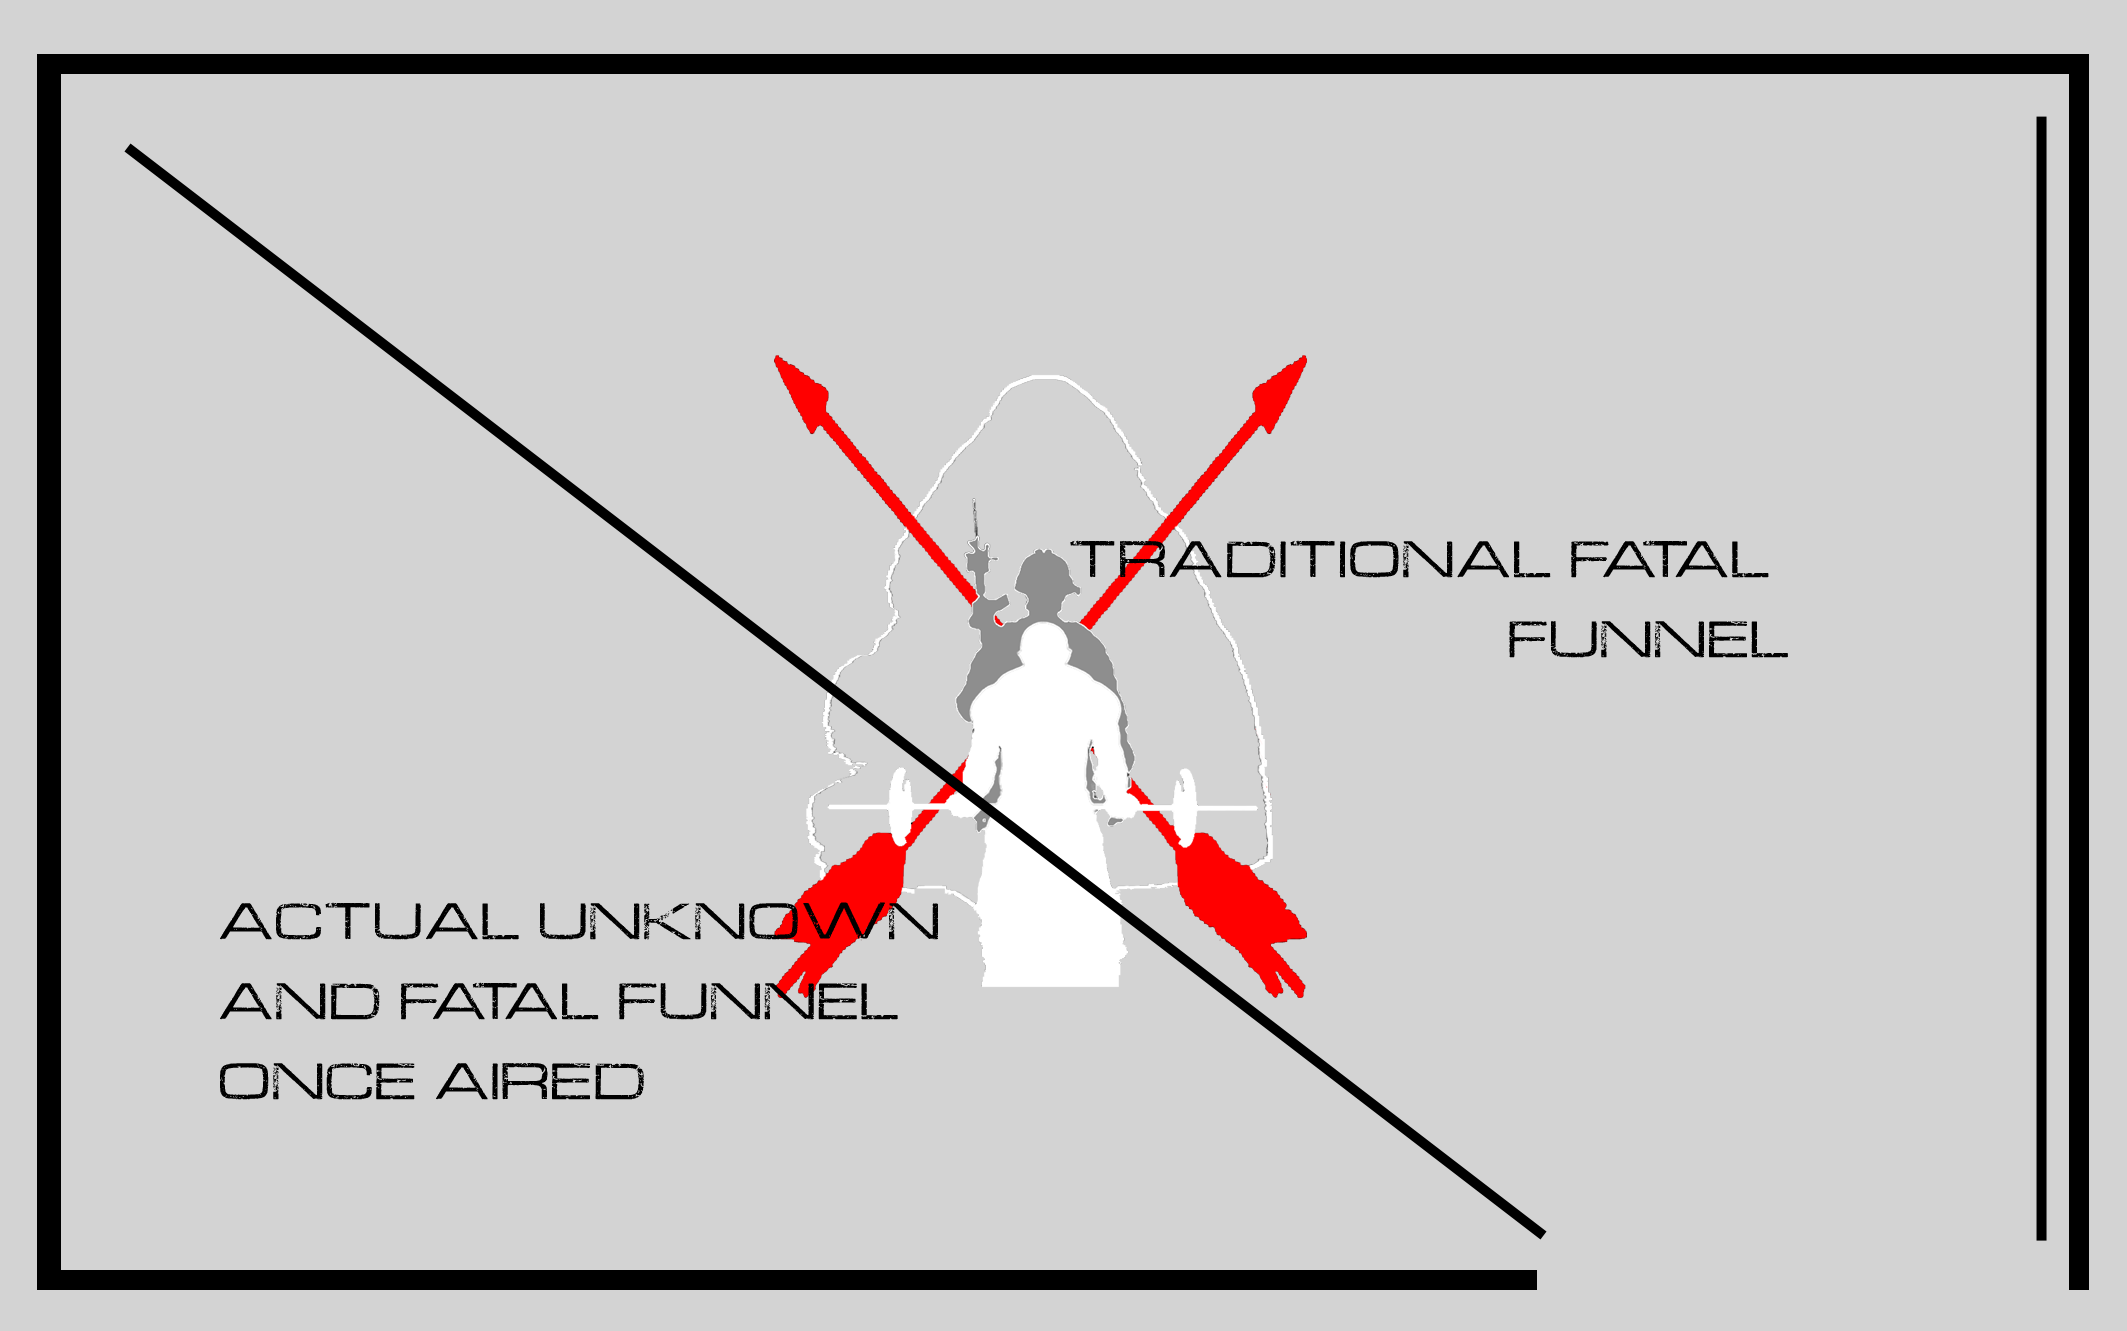 Further discussion on fatal funnel and room clearance coming soon!